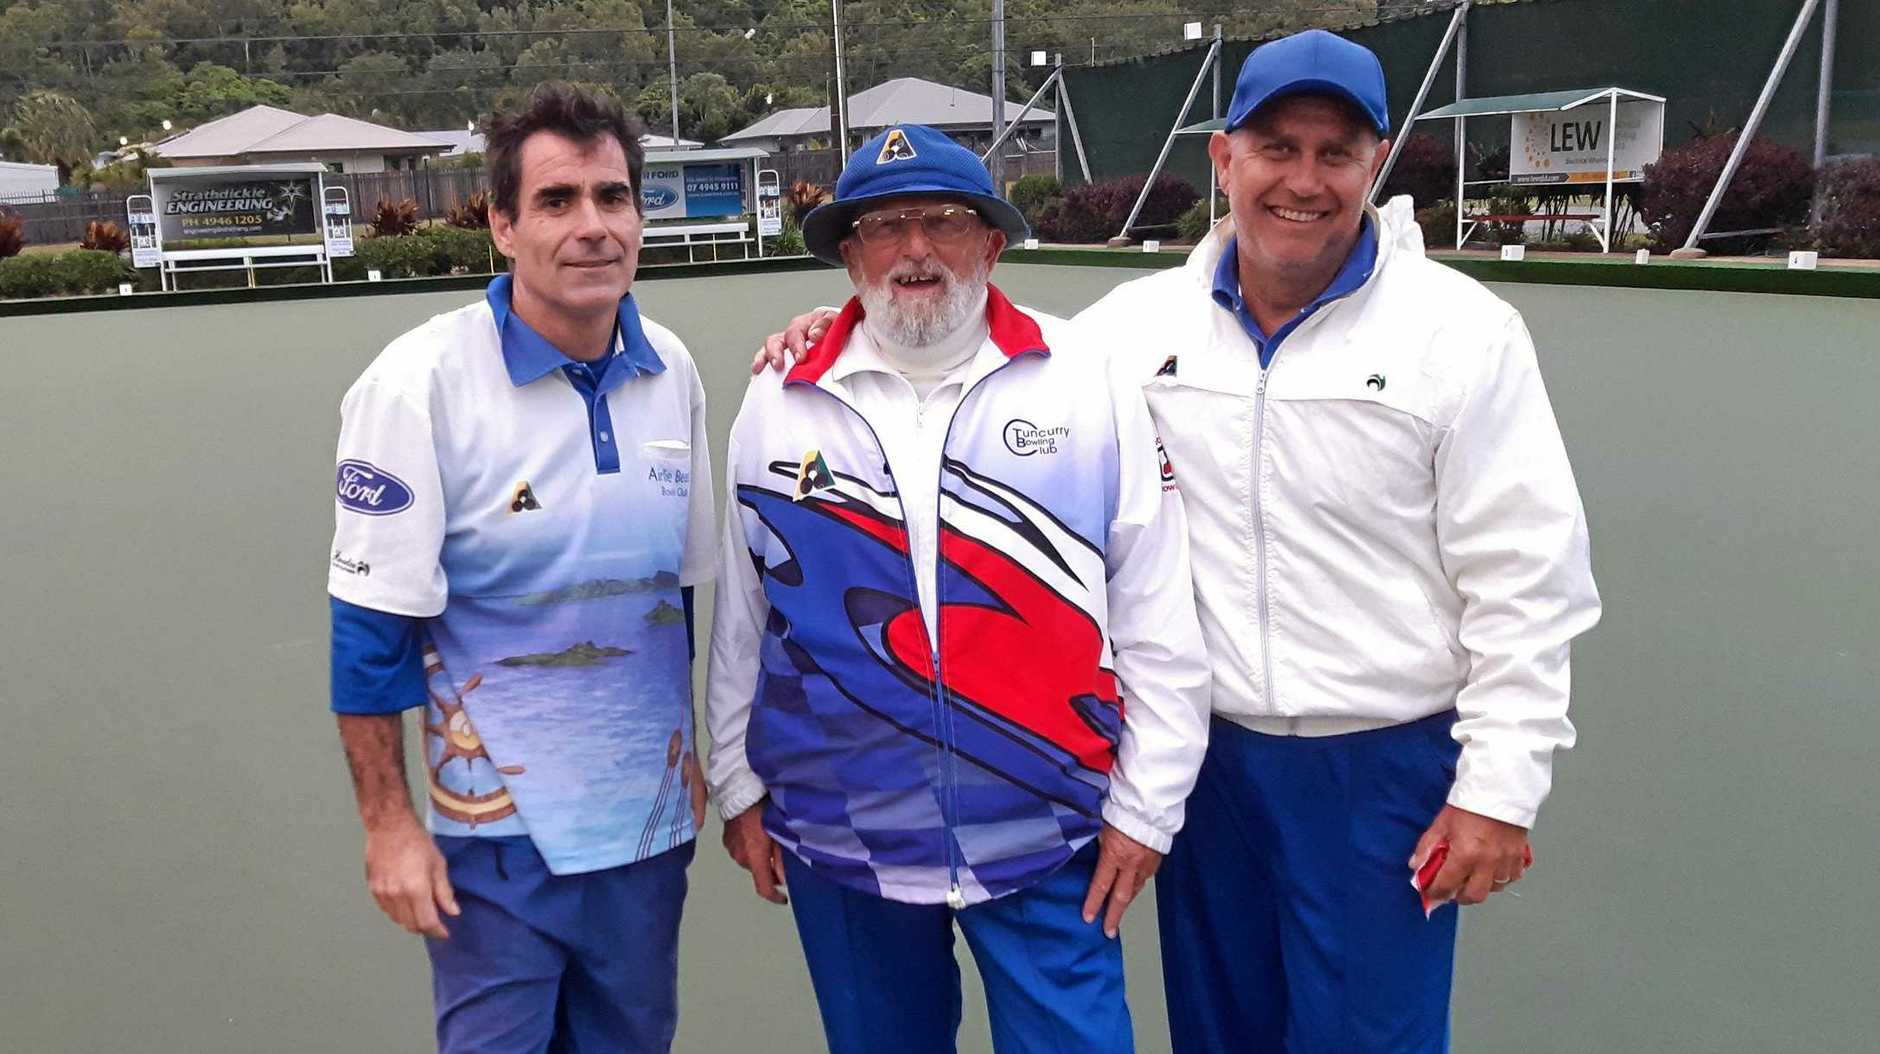 Andy Bell, John Beach Snr and Man Isgro following a semi-final clash played in the drizzling rain at Airlie Beach Bowls Club.